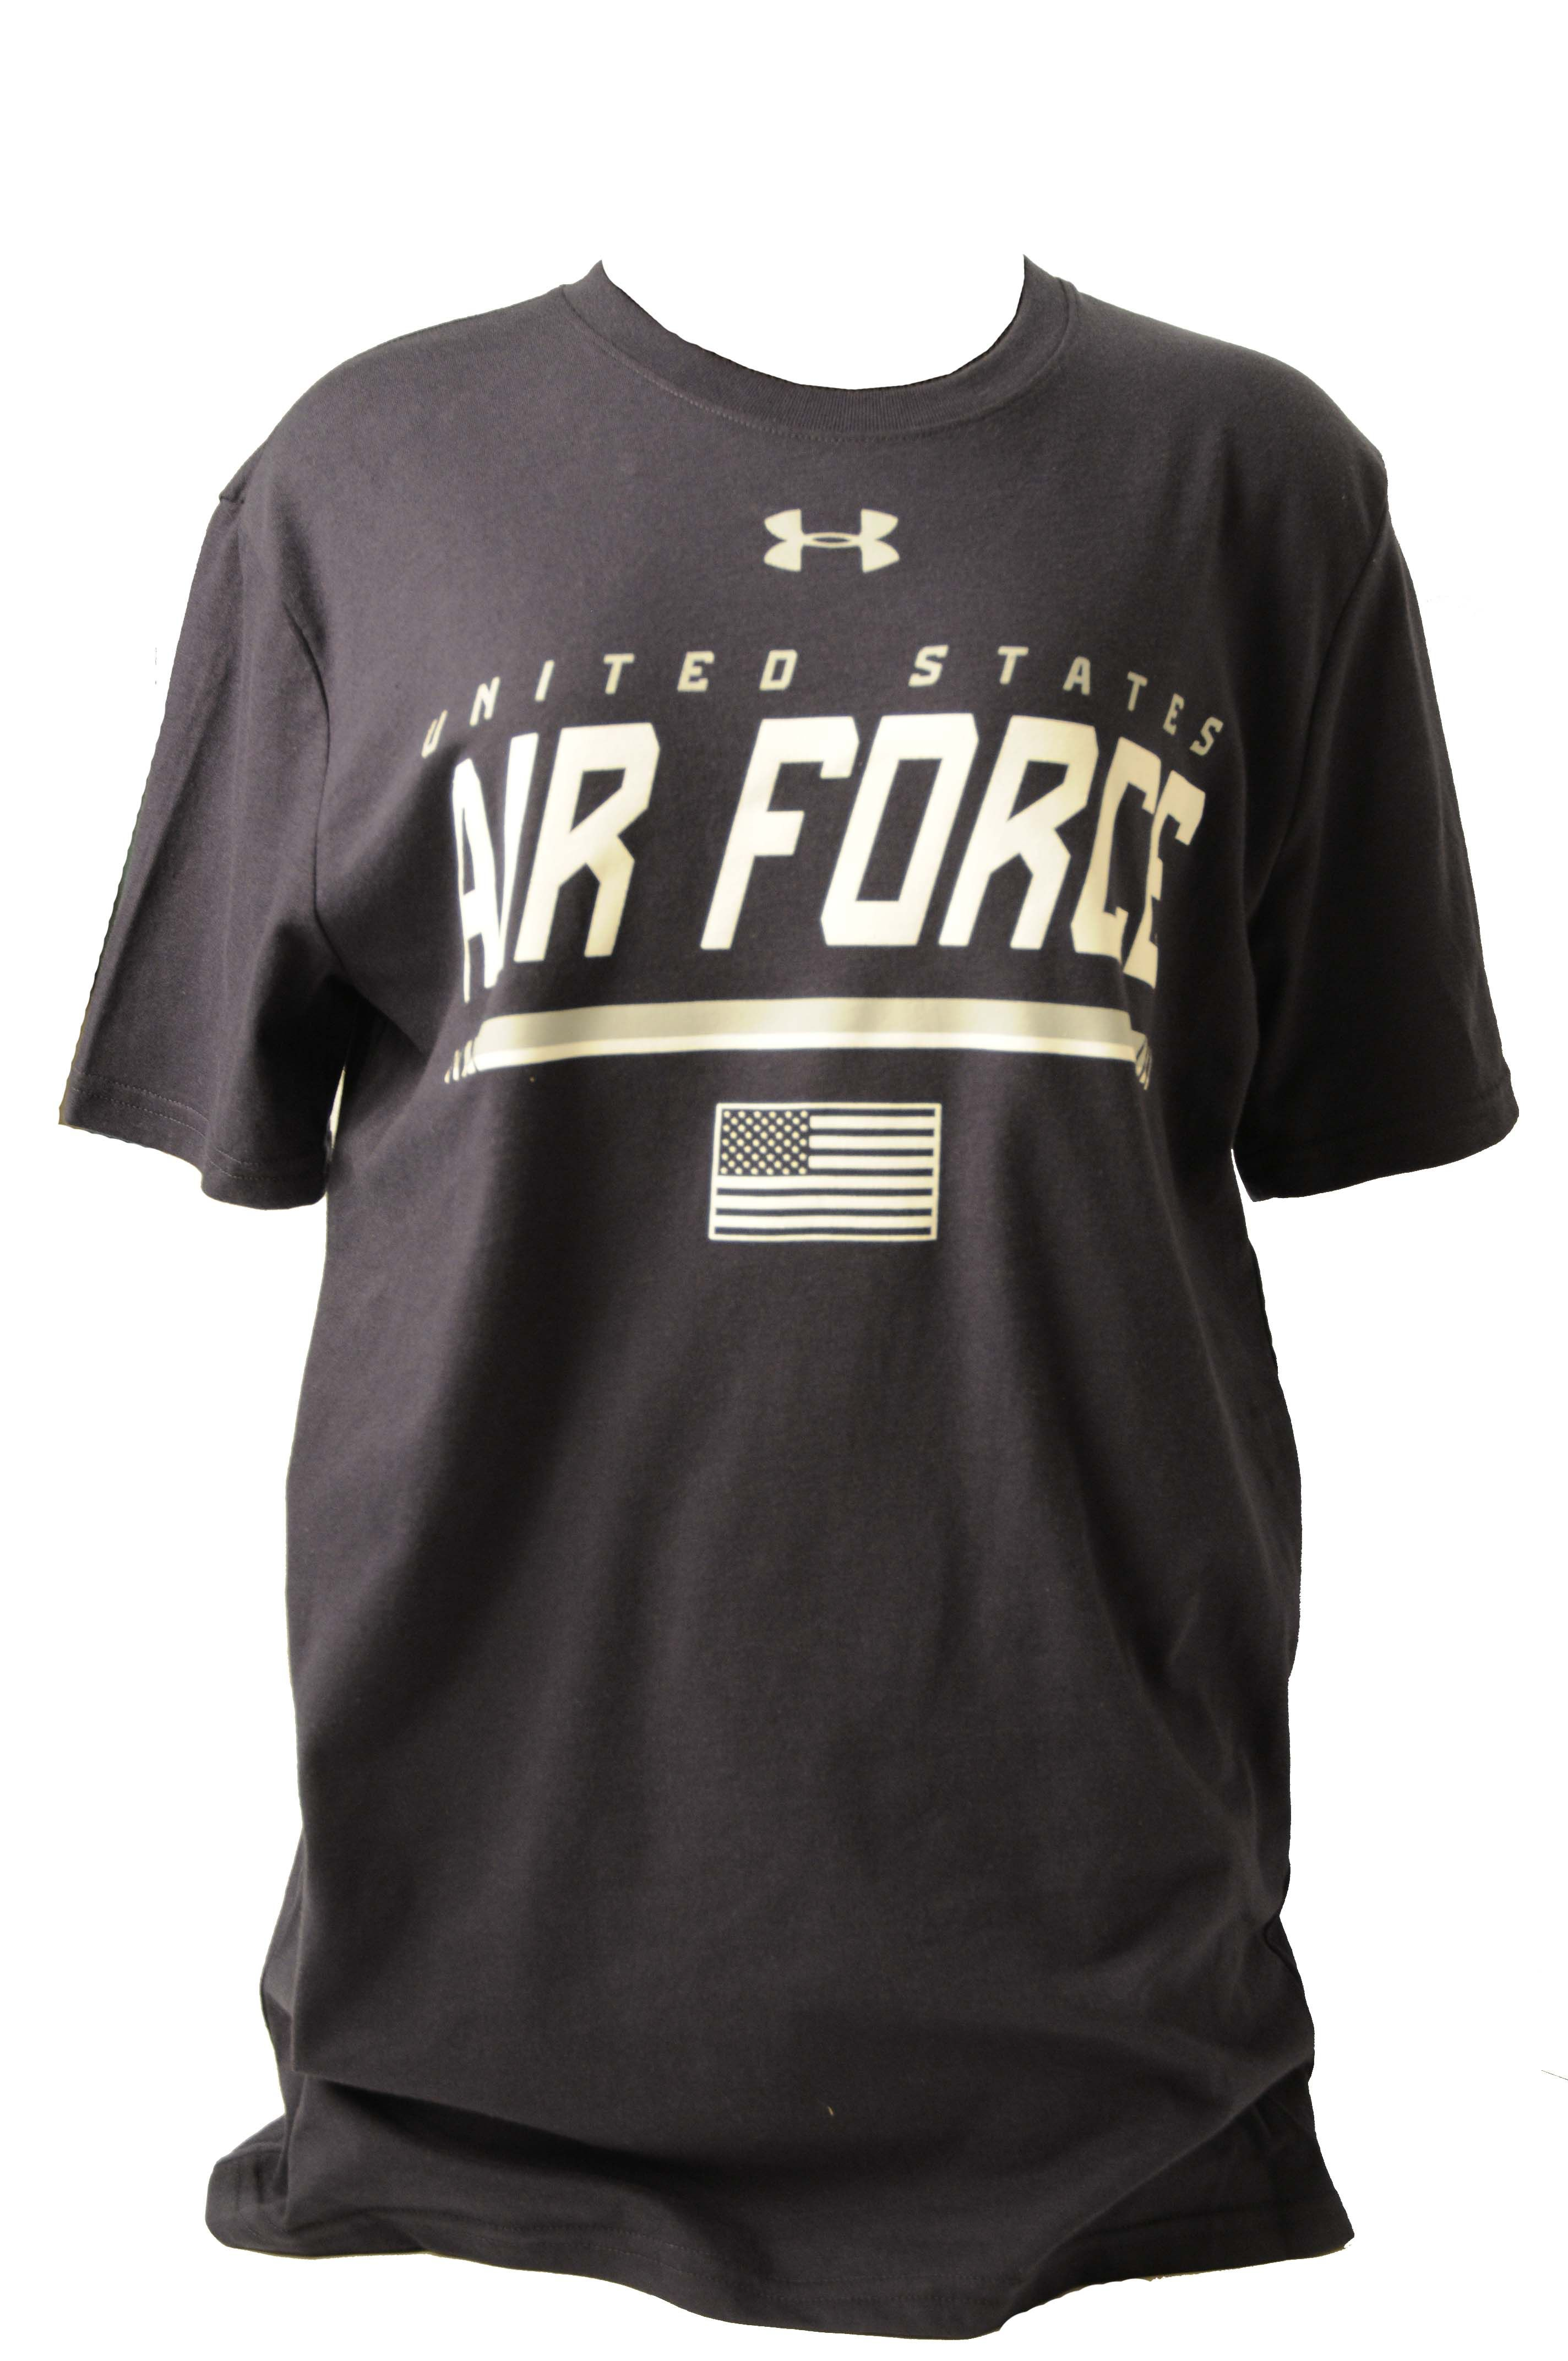 AIR FORCE UNDER ARMOUR Under Armour shirt featuring the